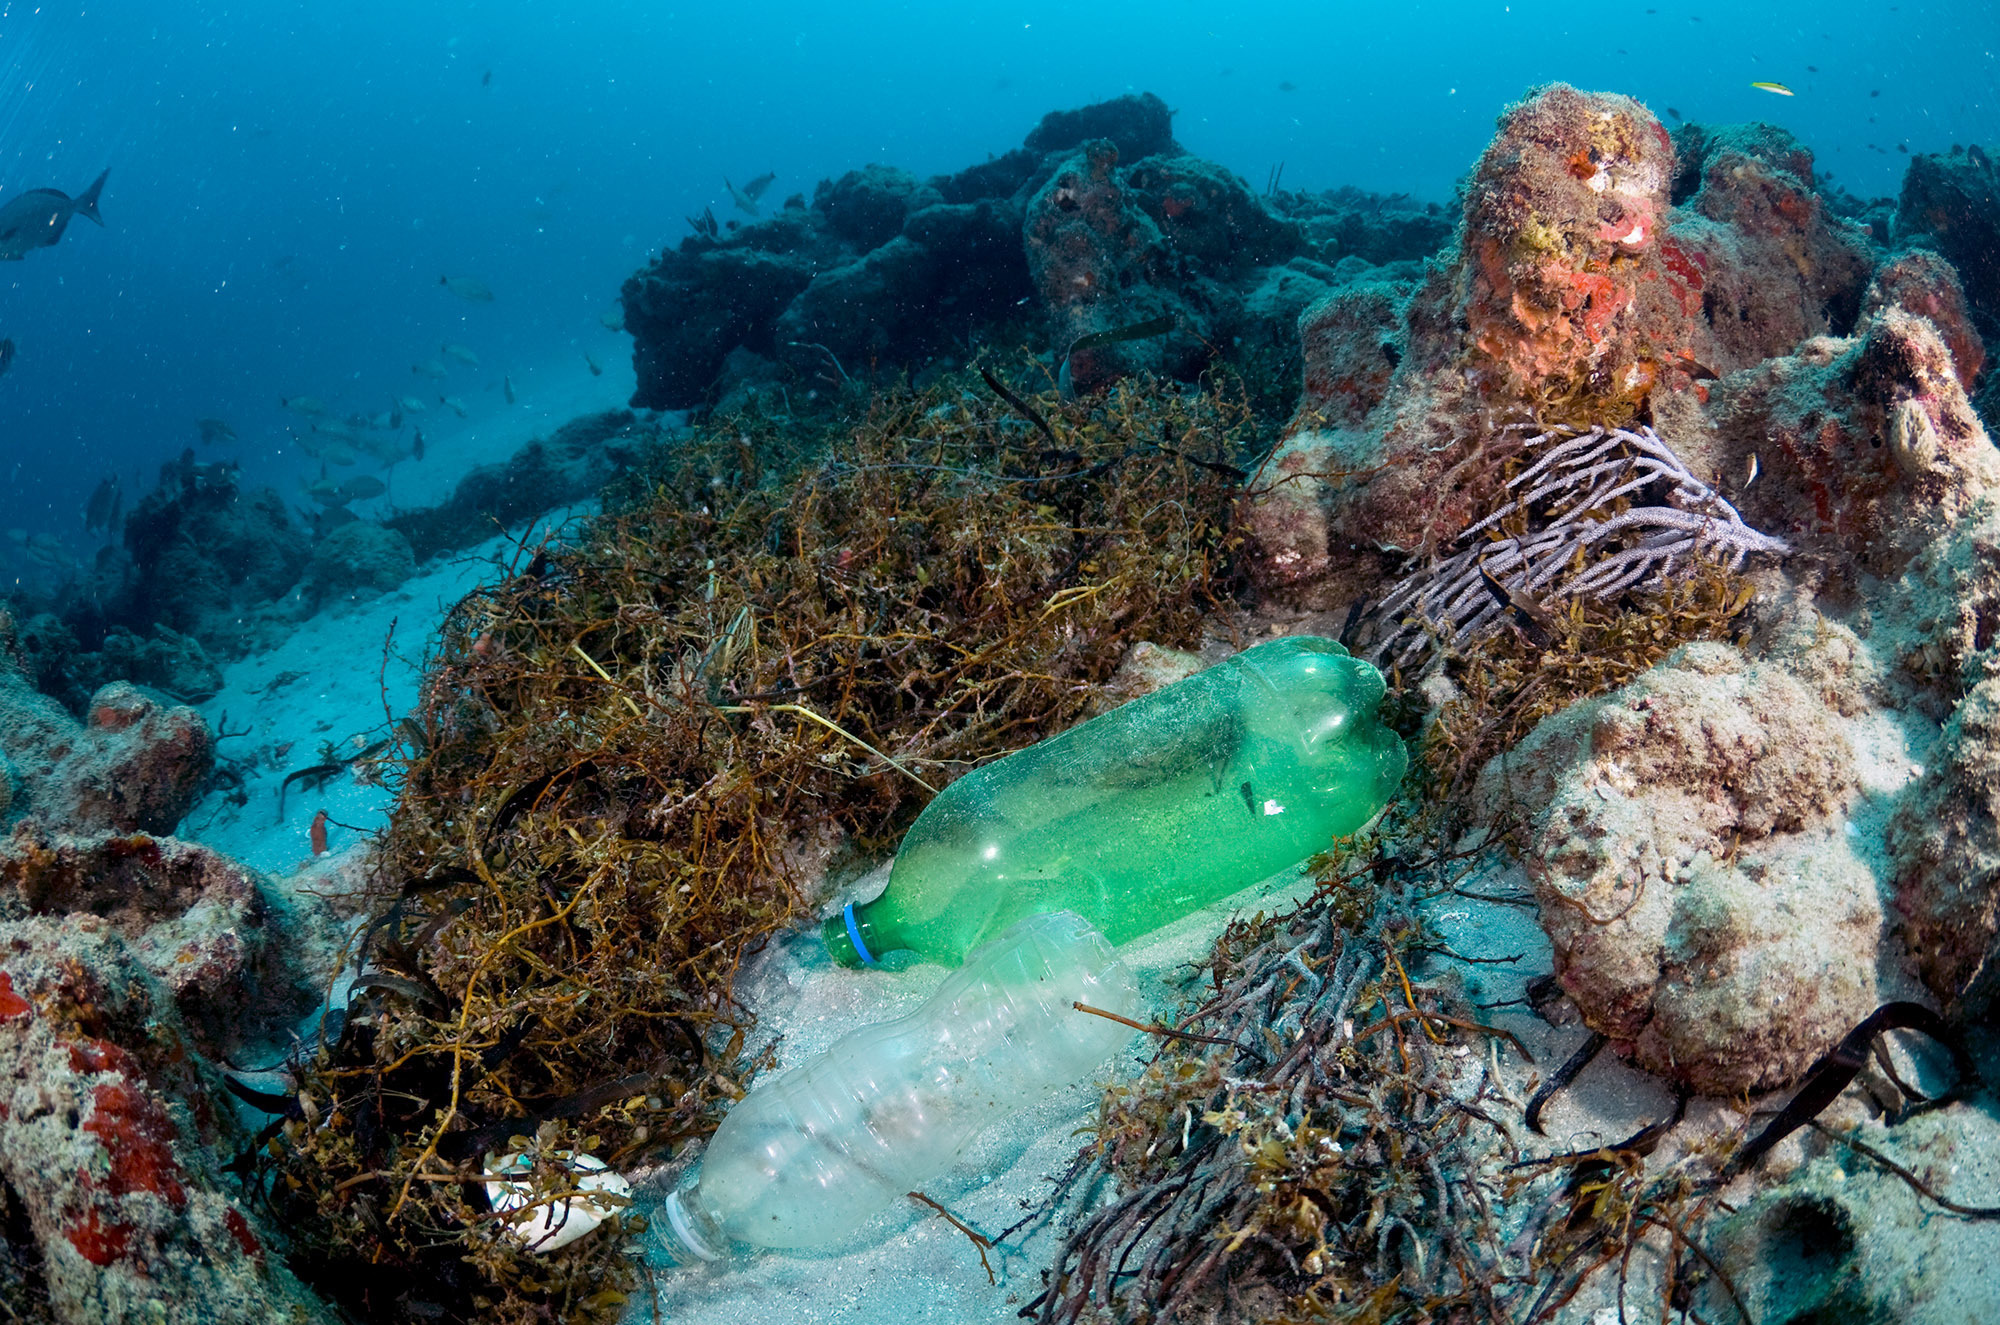 Diapers, cotton swabs, bottles and wrappers are littering reefs. A new study finds they're causing widespread damage.